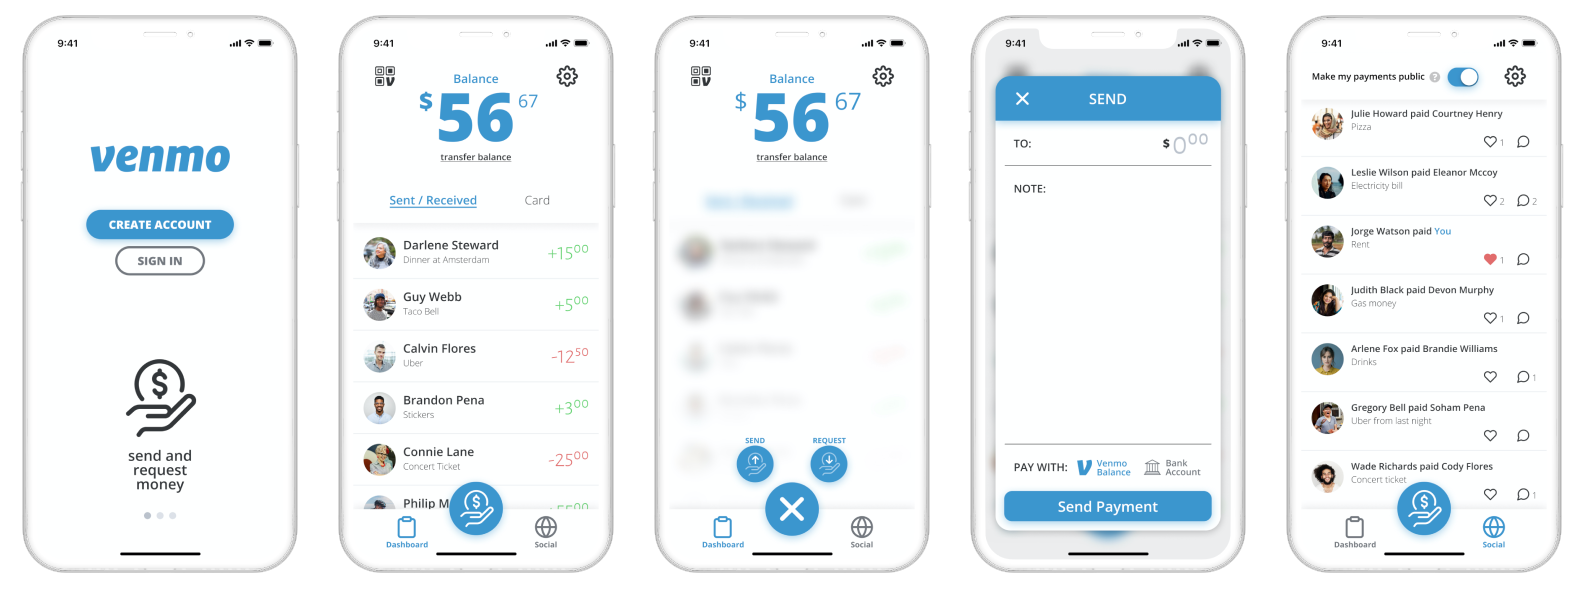 First version of the redesign showing 5 updated screens